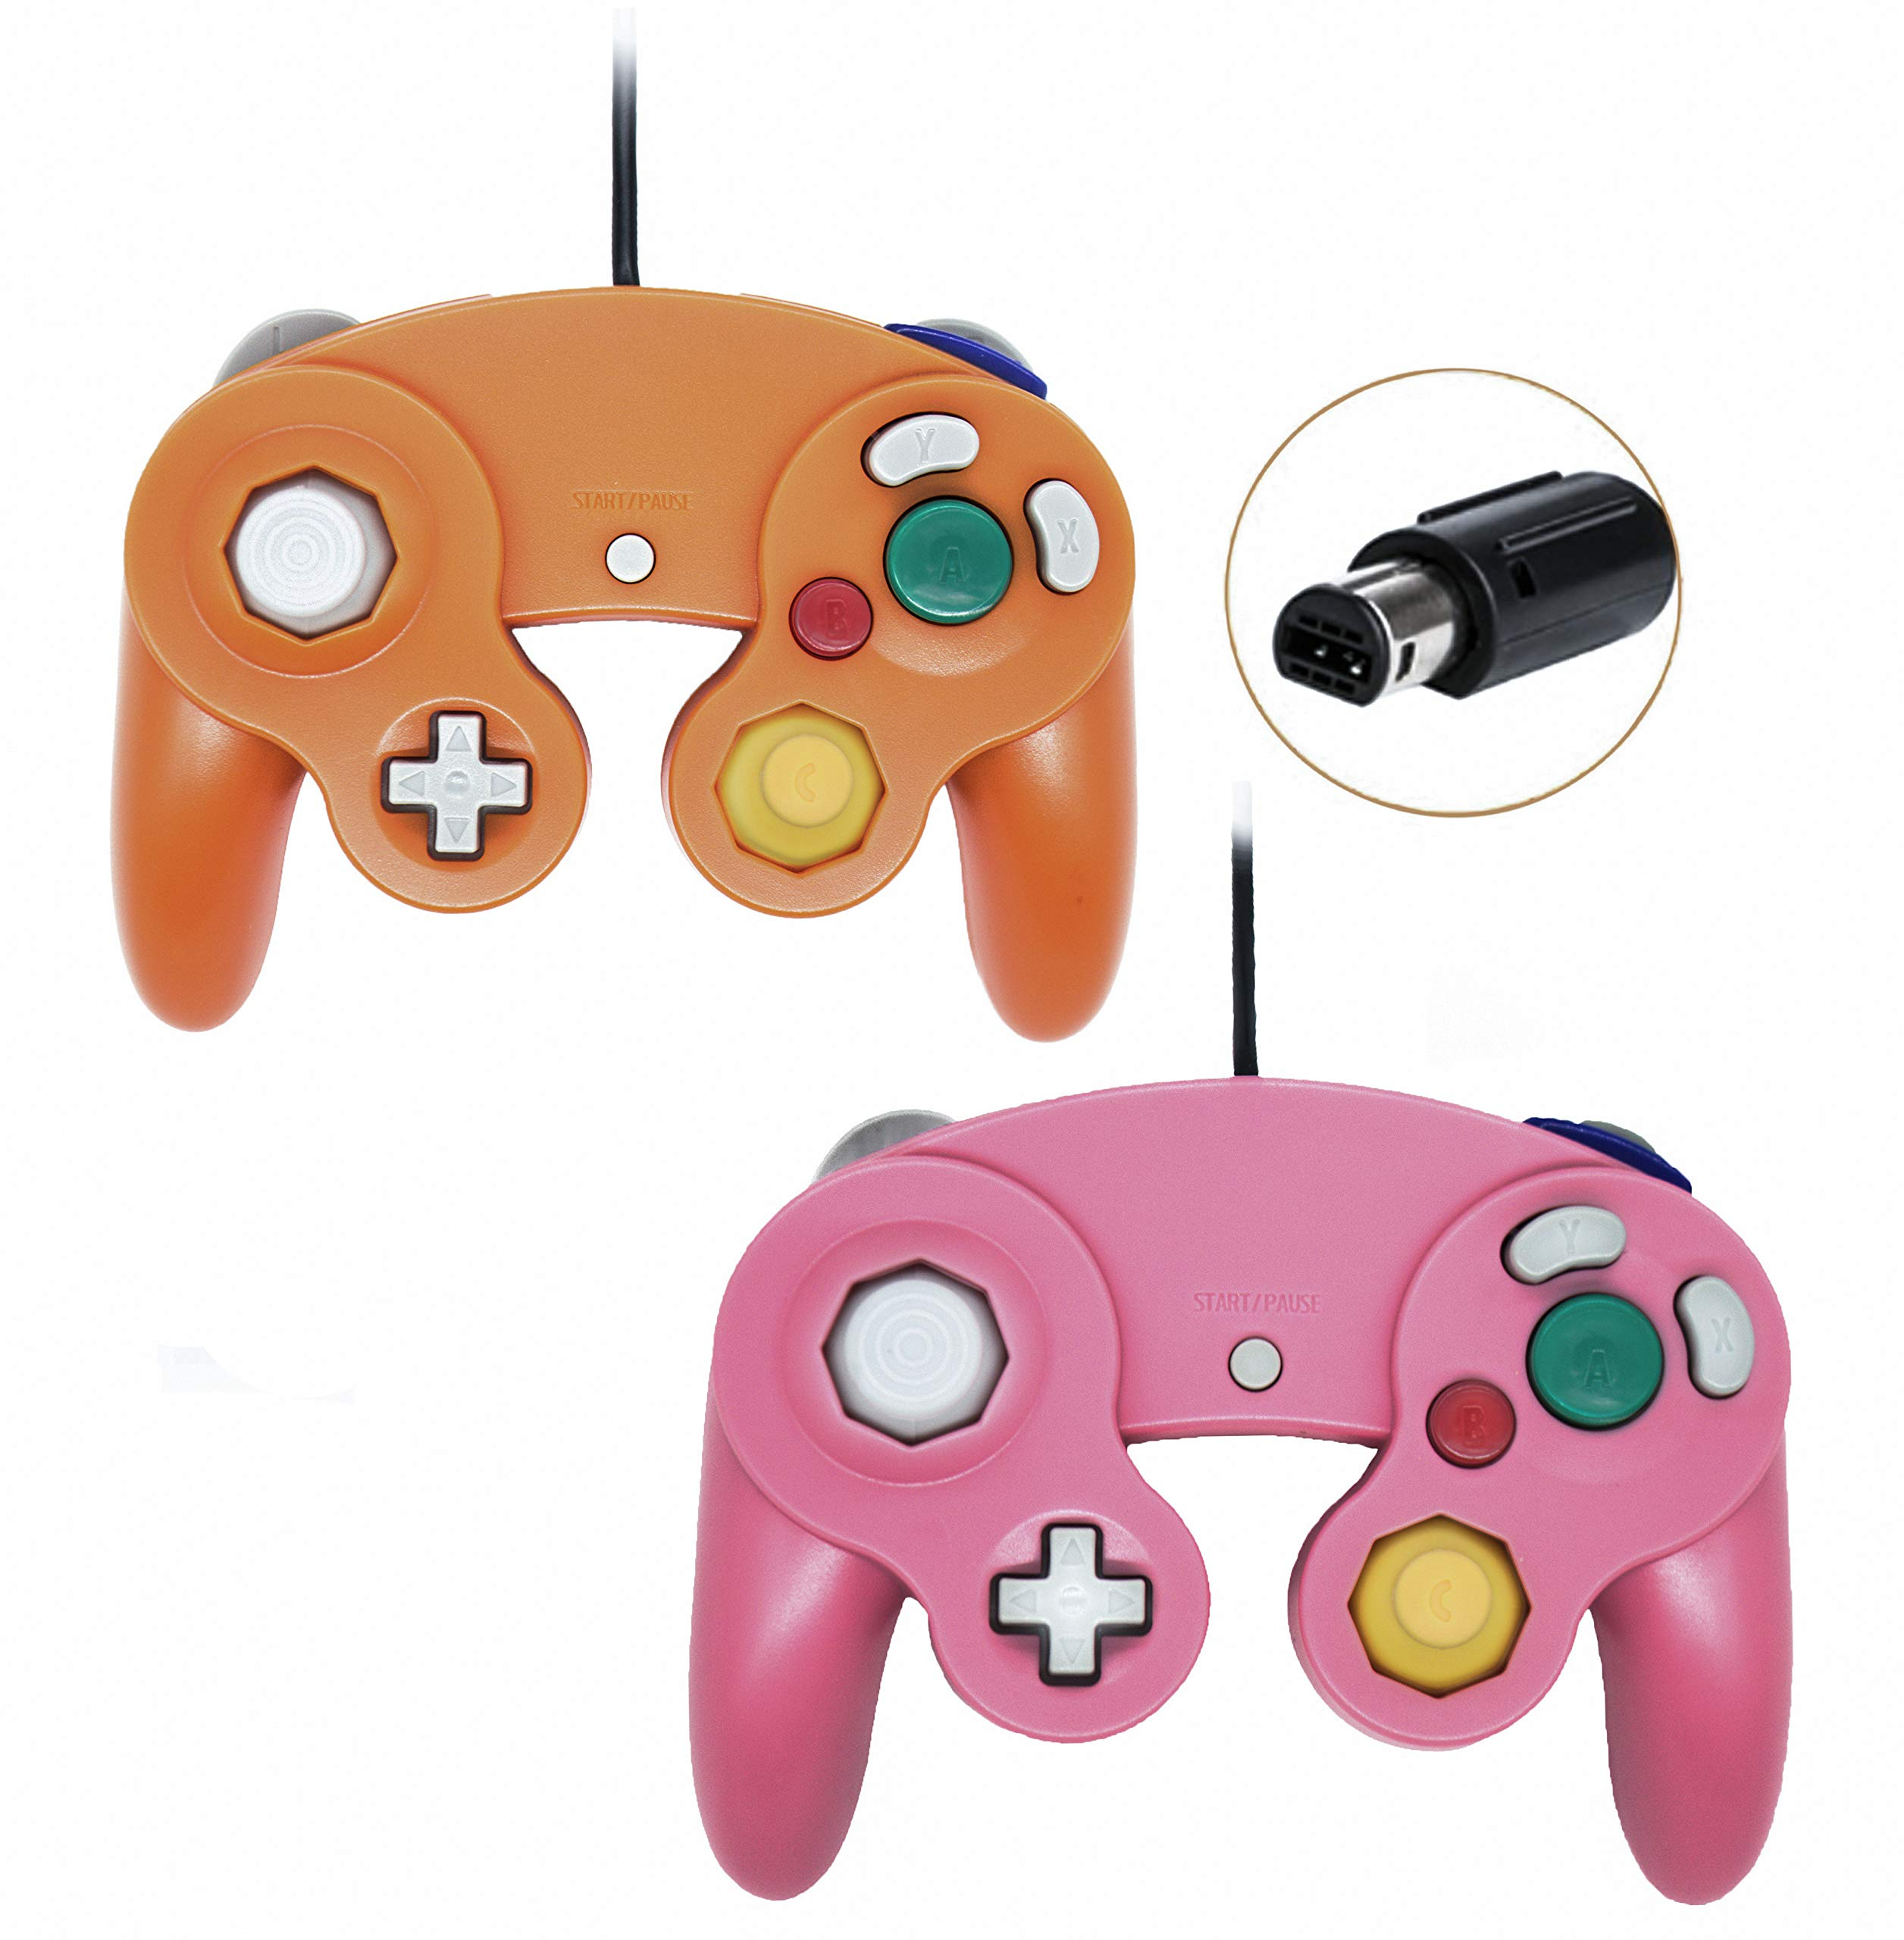 Wired Controller For Gamecube Game Cube, Classic Ngc Gamepad Joystick For Wii Nintendo Console (Pink and Orage,Pack Of 2)